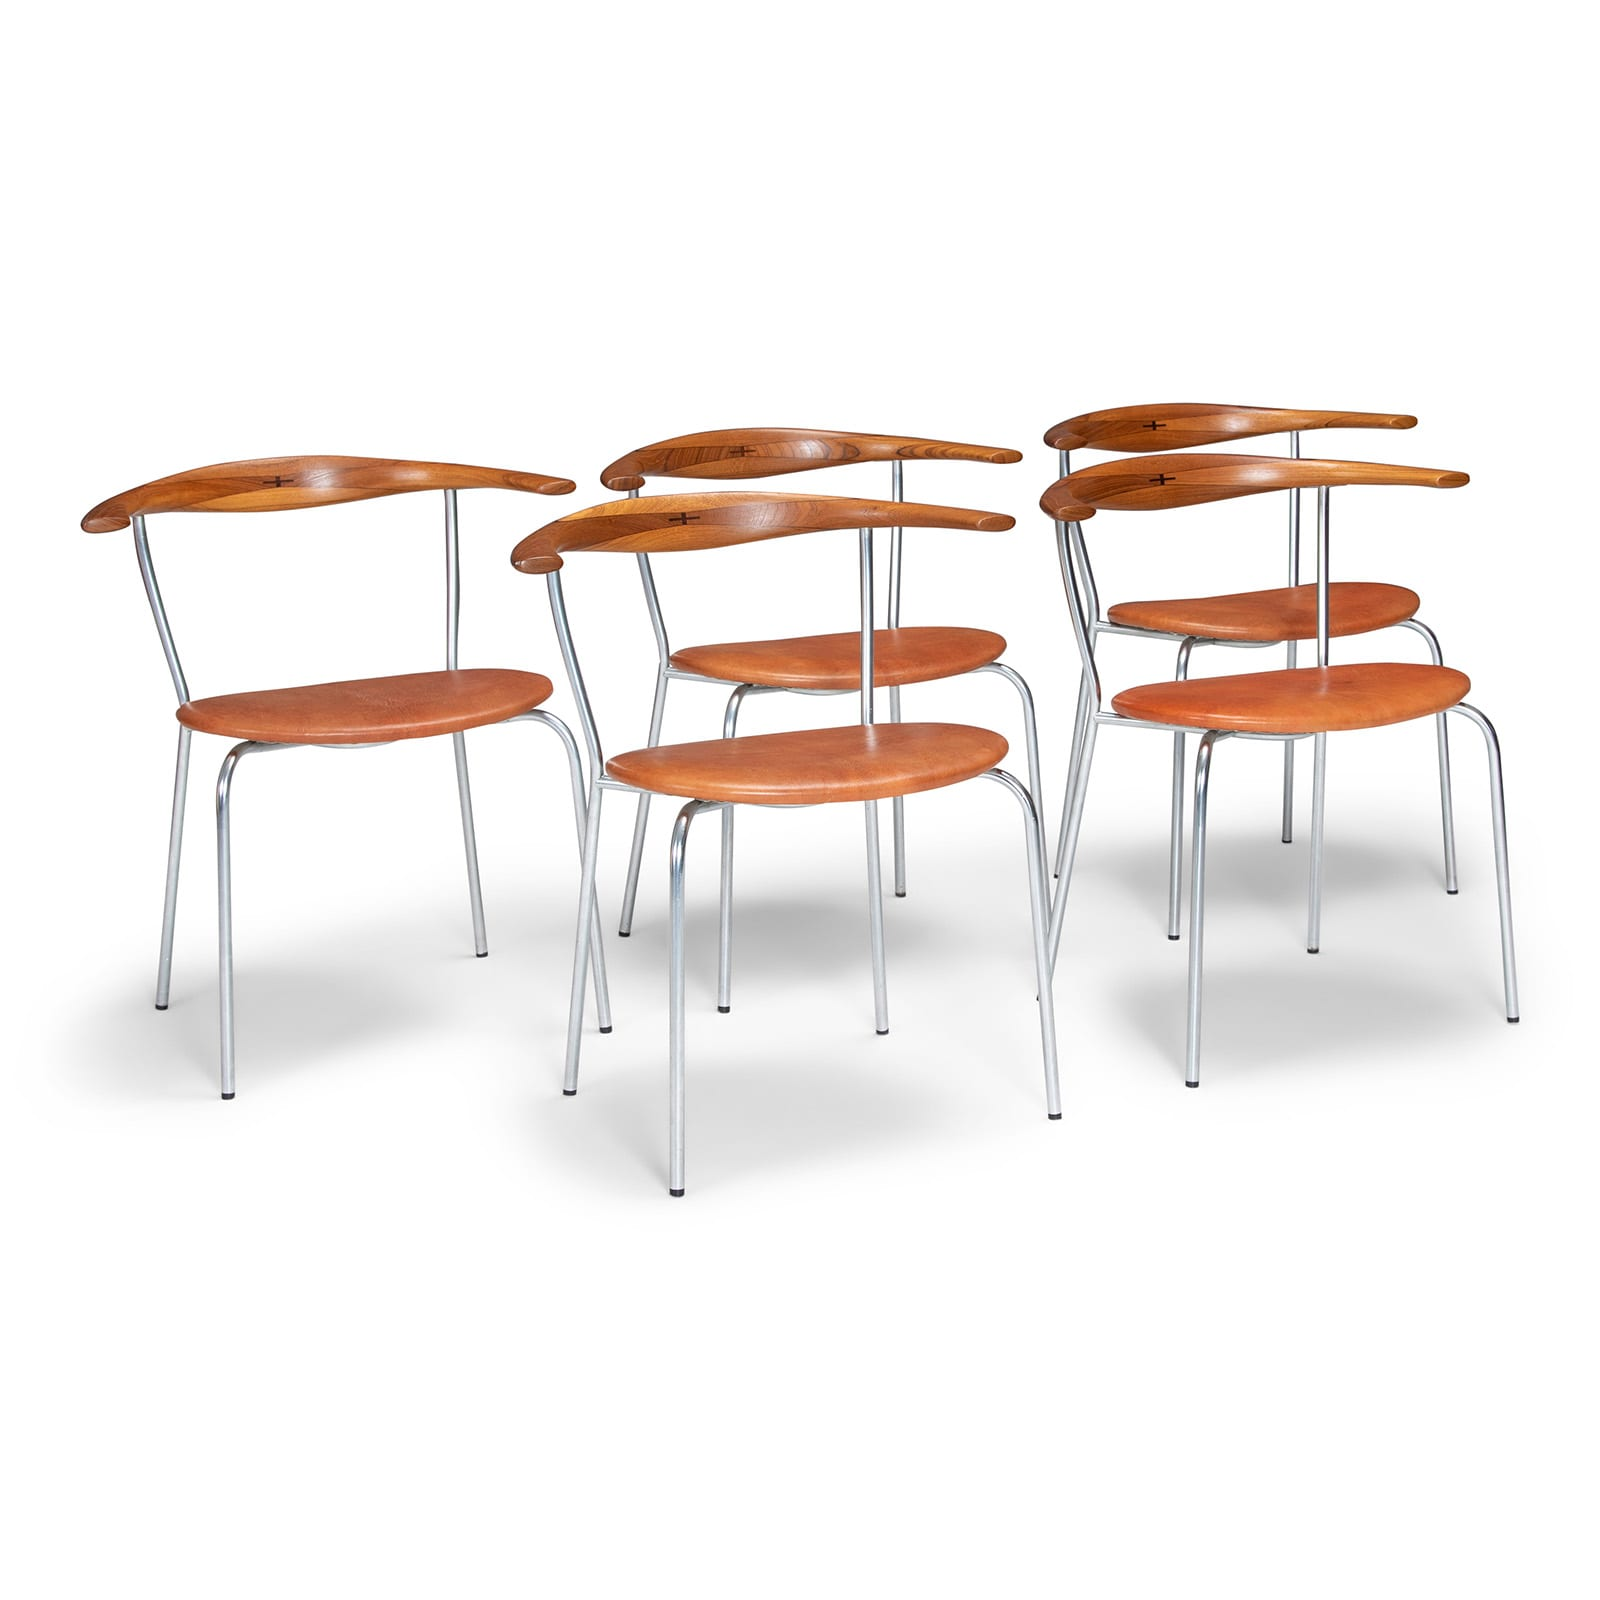 A set of JH701 chairs